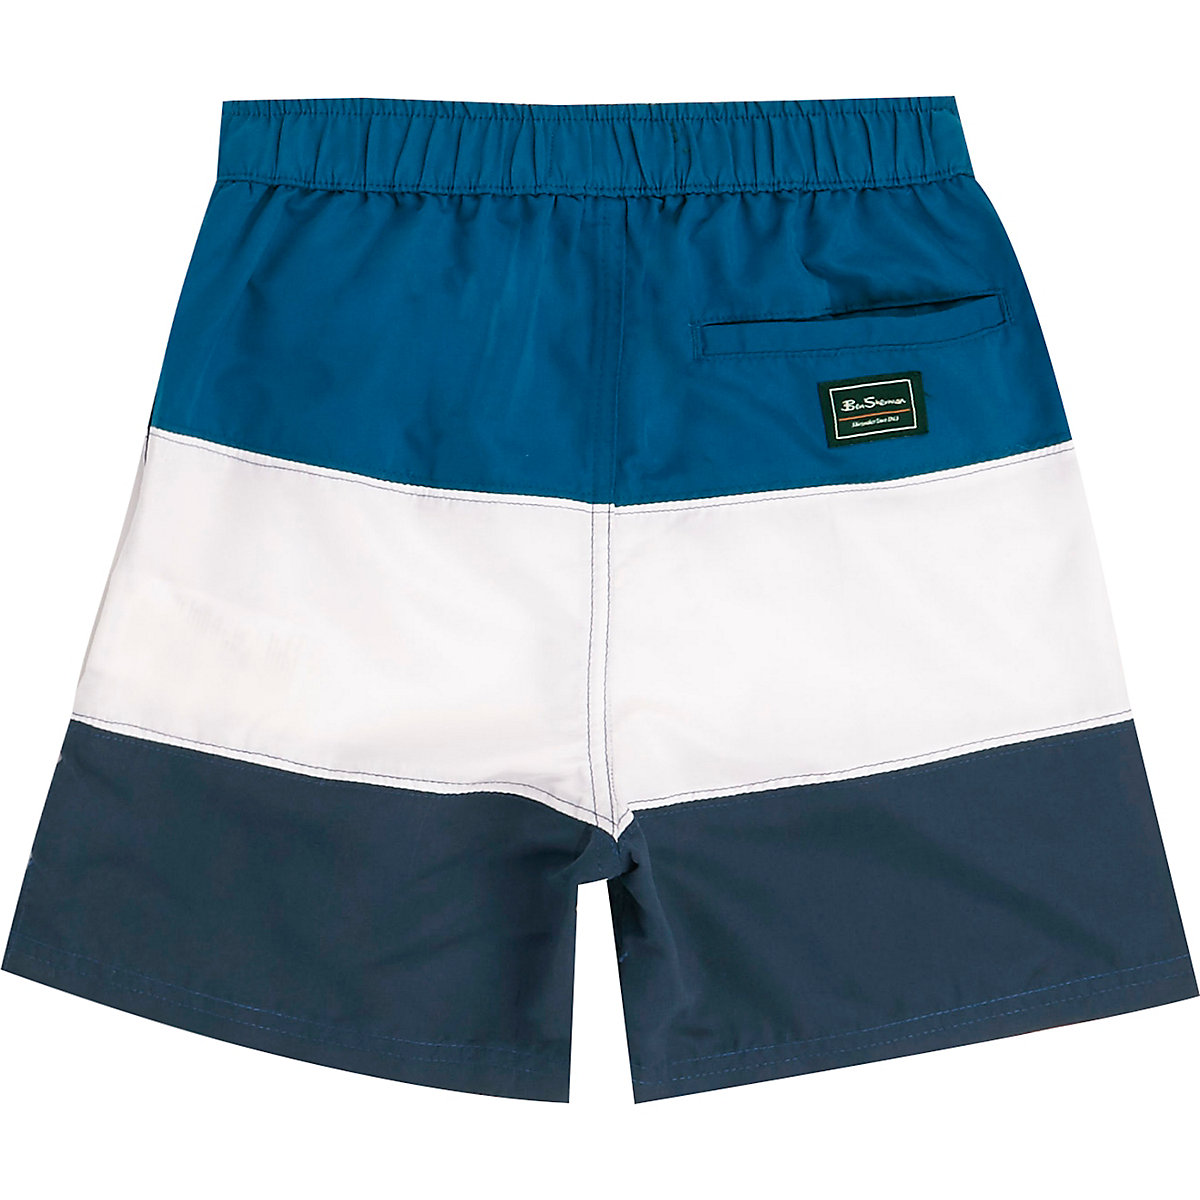 0c4ff20bf7ff Boys blue Ben Sherman swim trunks - Swim Trunks - boys